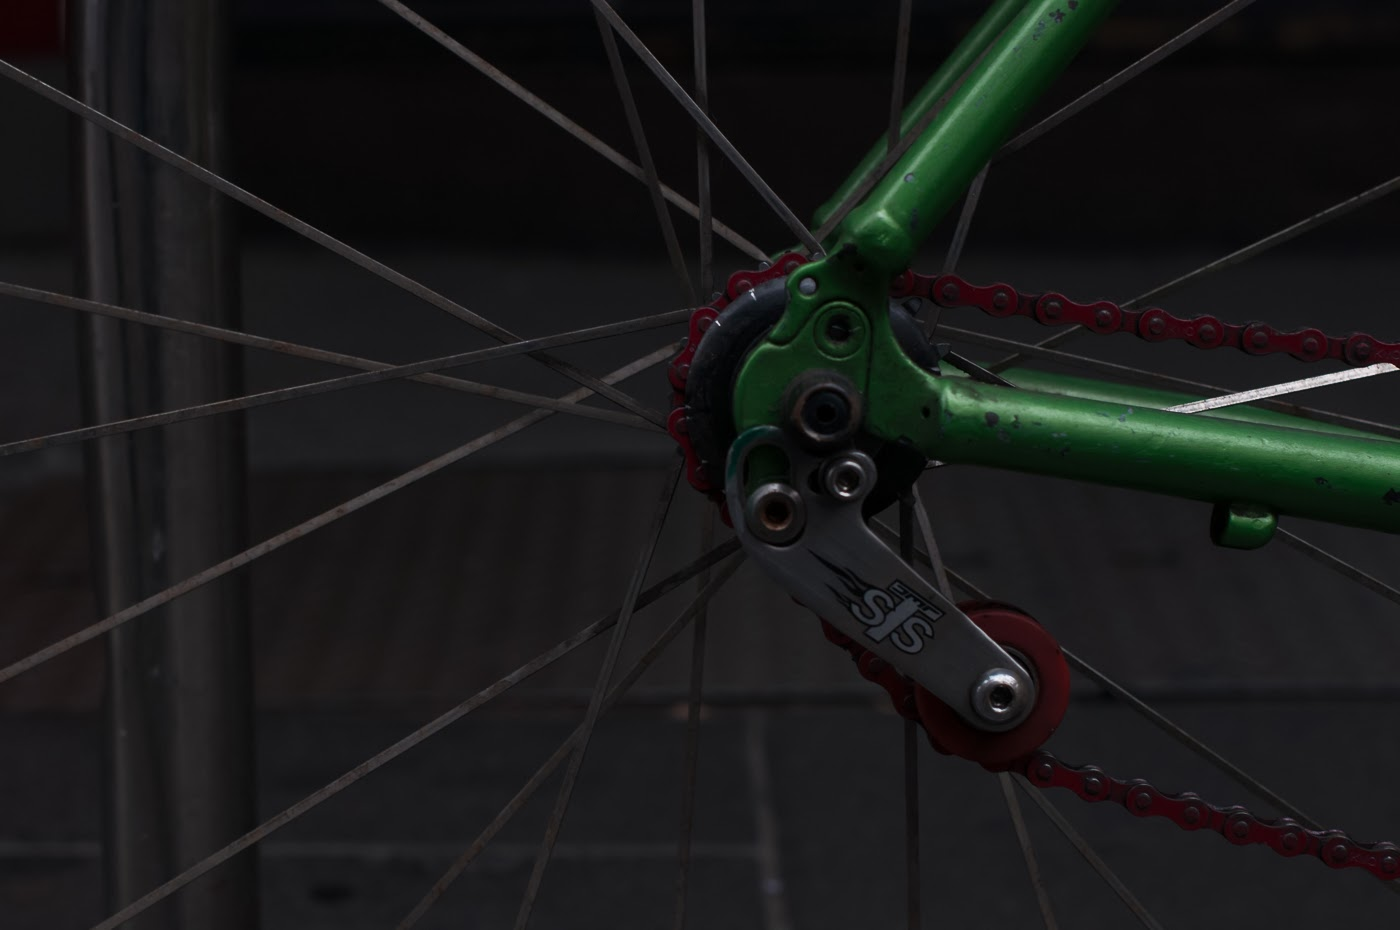 single speed, bike, bicycle, tim macauley, the biketorialist, melbourne, conversion, chain, tensioner road bik, mavic, propalm